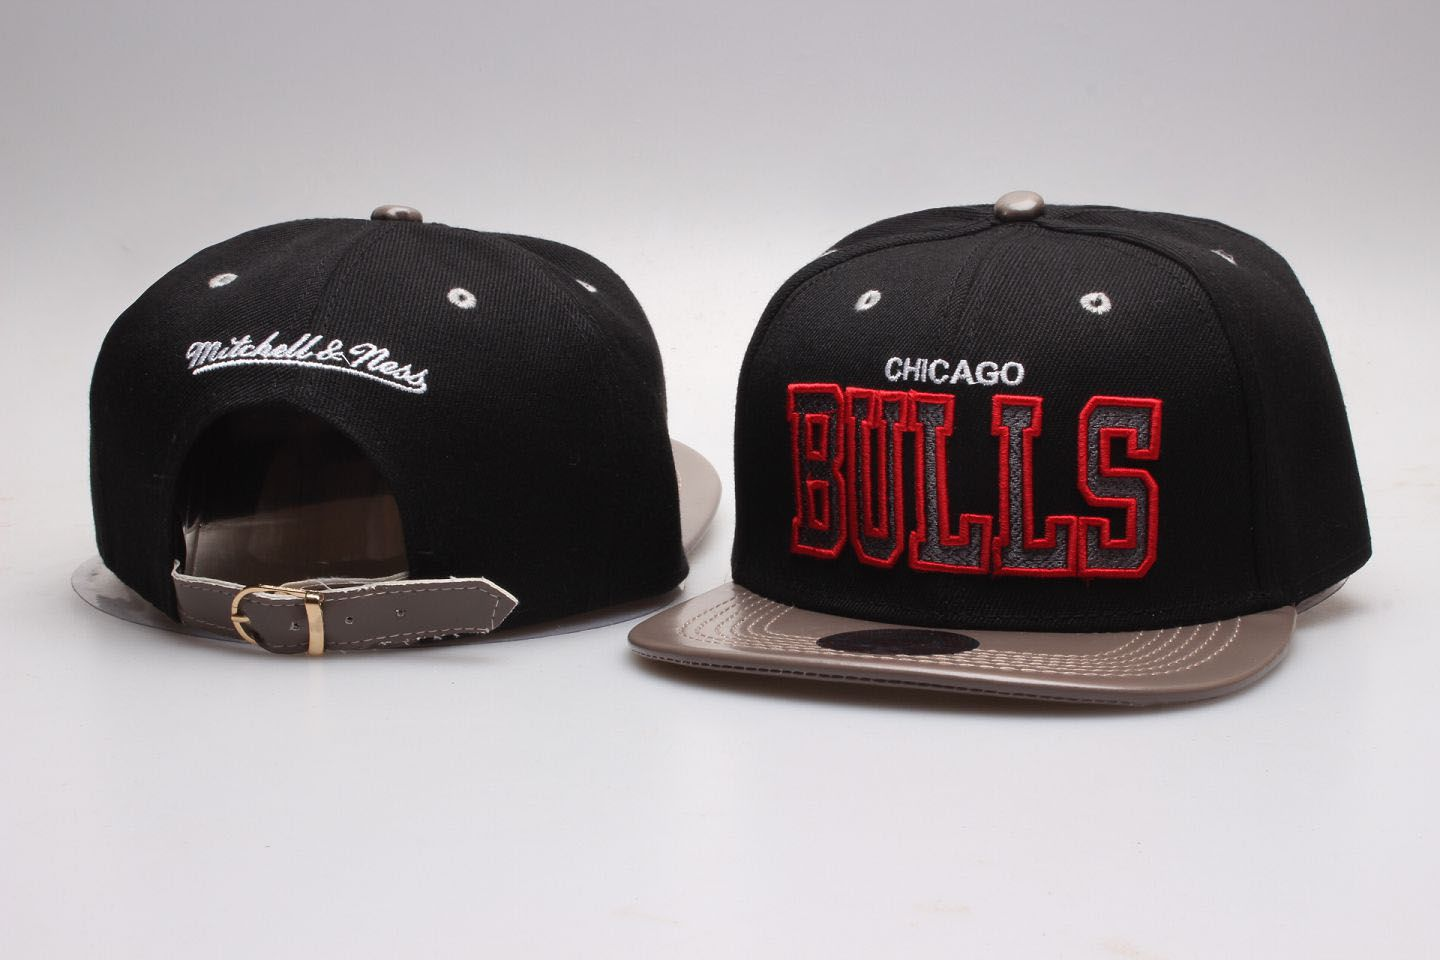 NBA Chicago Bulls Snapback hat 201811257